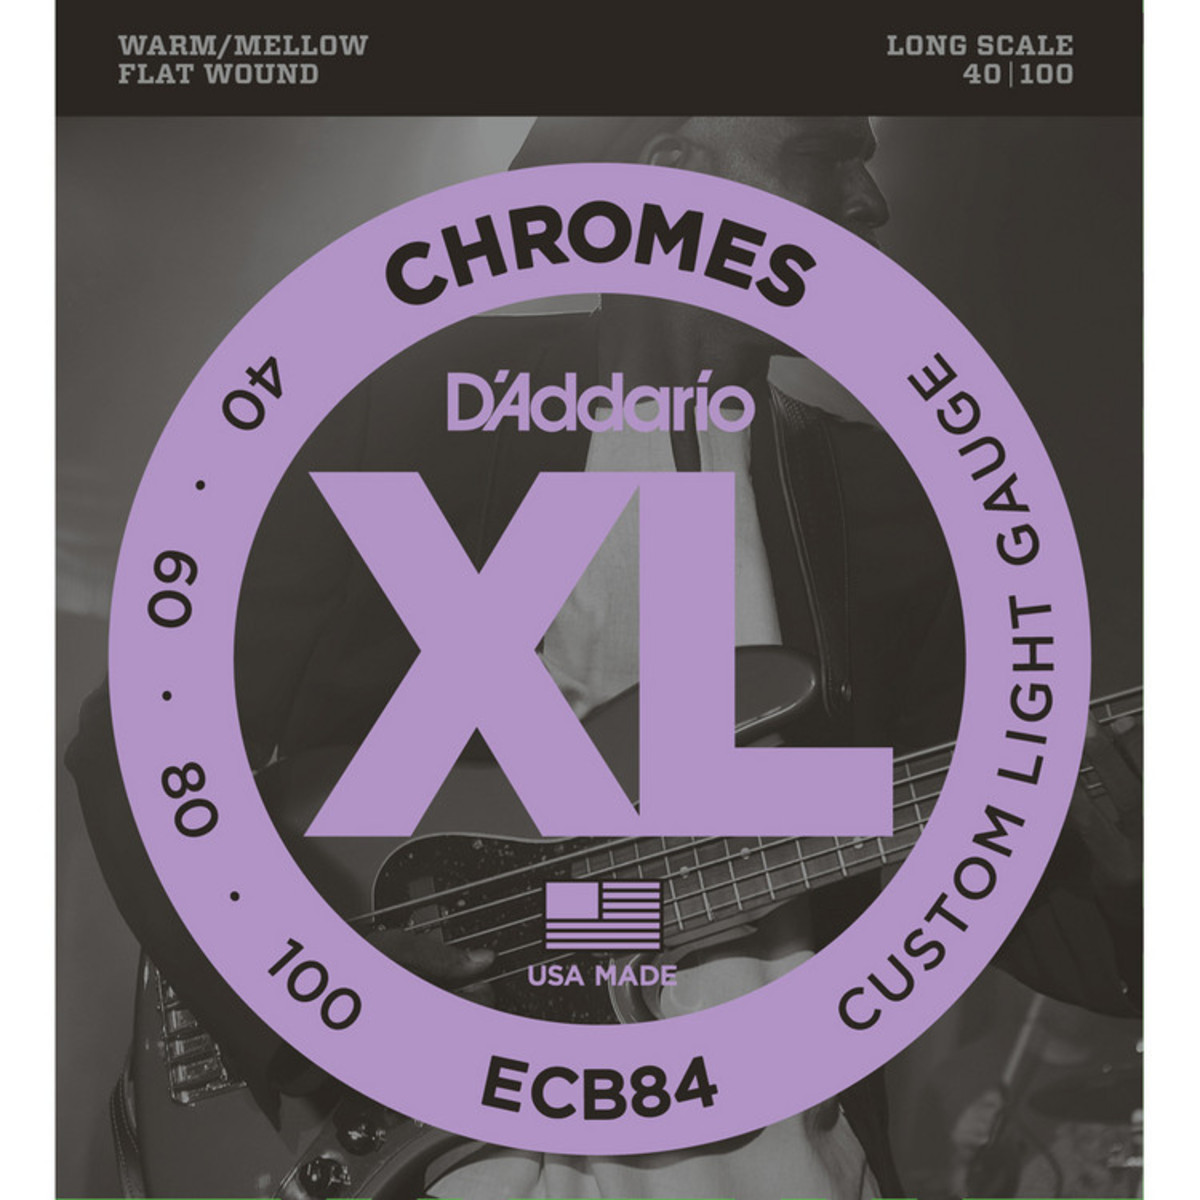 Image of DAddario ECB84 Chromes Bass Guitar Strings Custom Light 40-100 Long